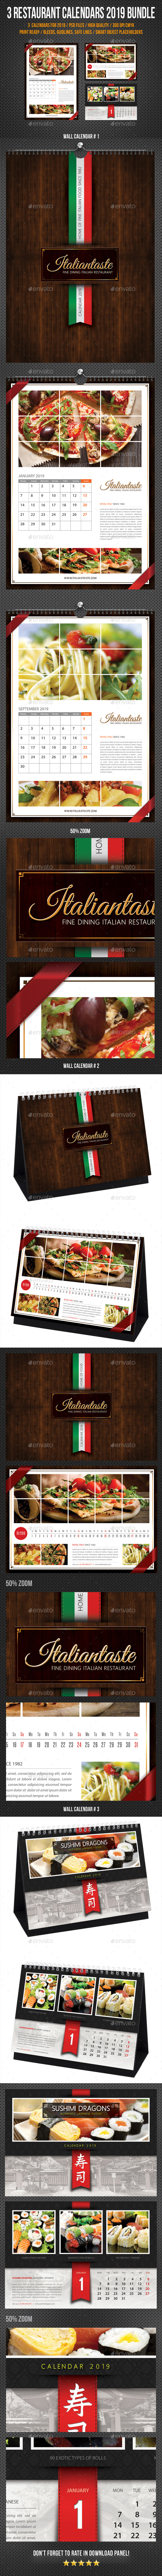 Restaurant Calendars 2019 Bundle - Calendars Stationery